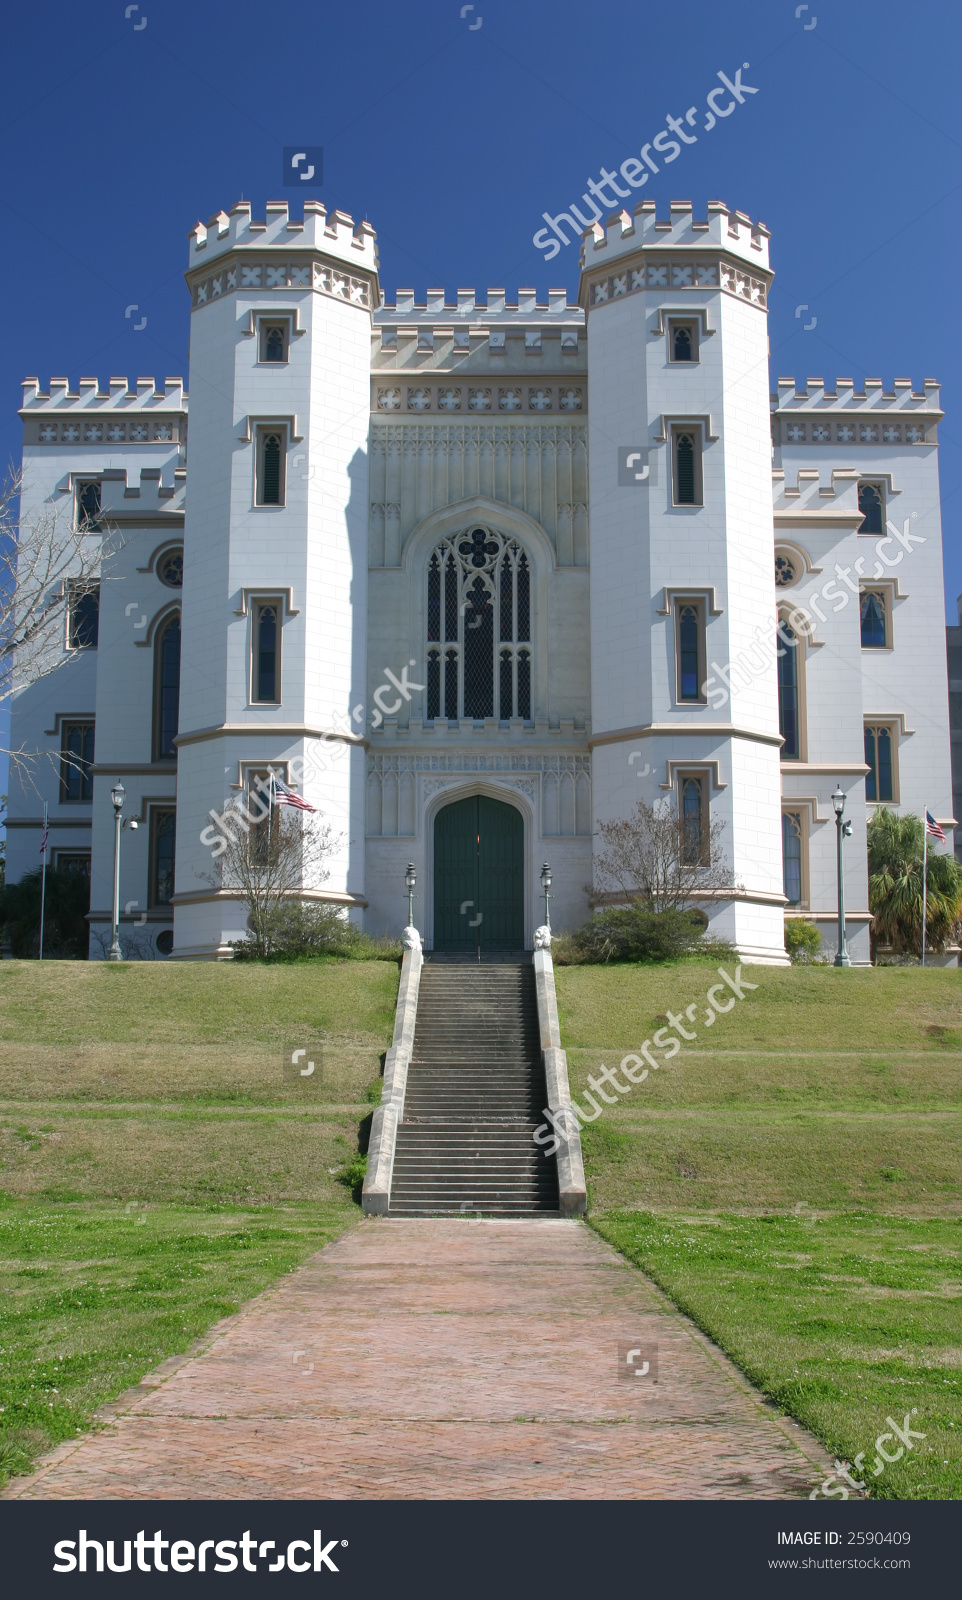 Old State Capitol Building In Baton Rouge Louisiana Front View.